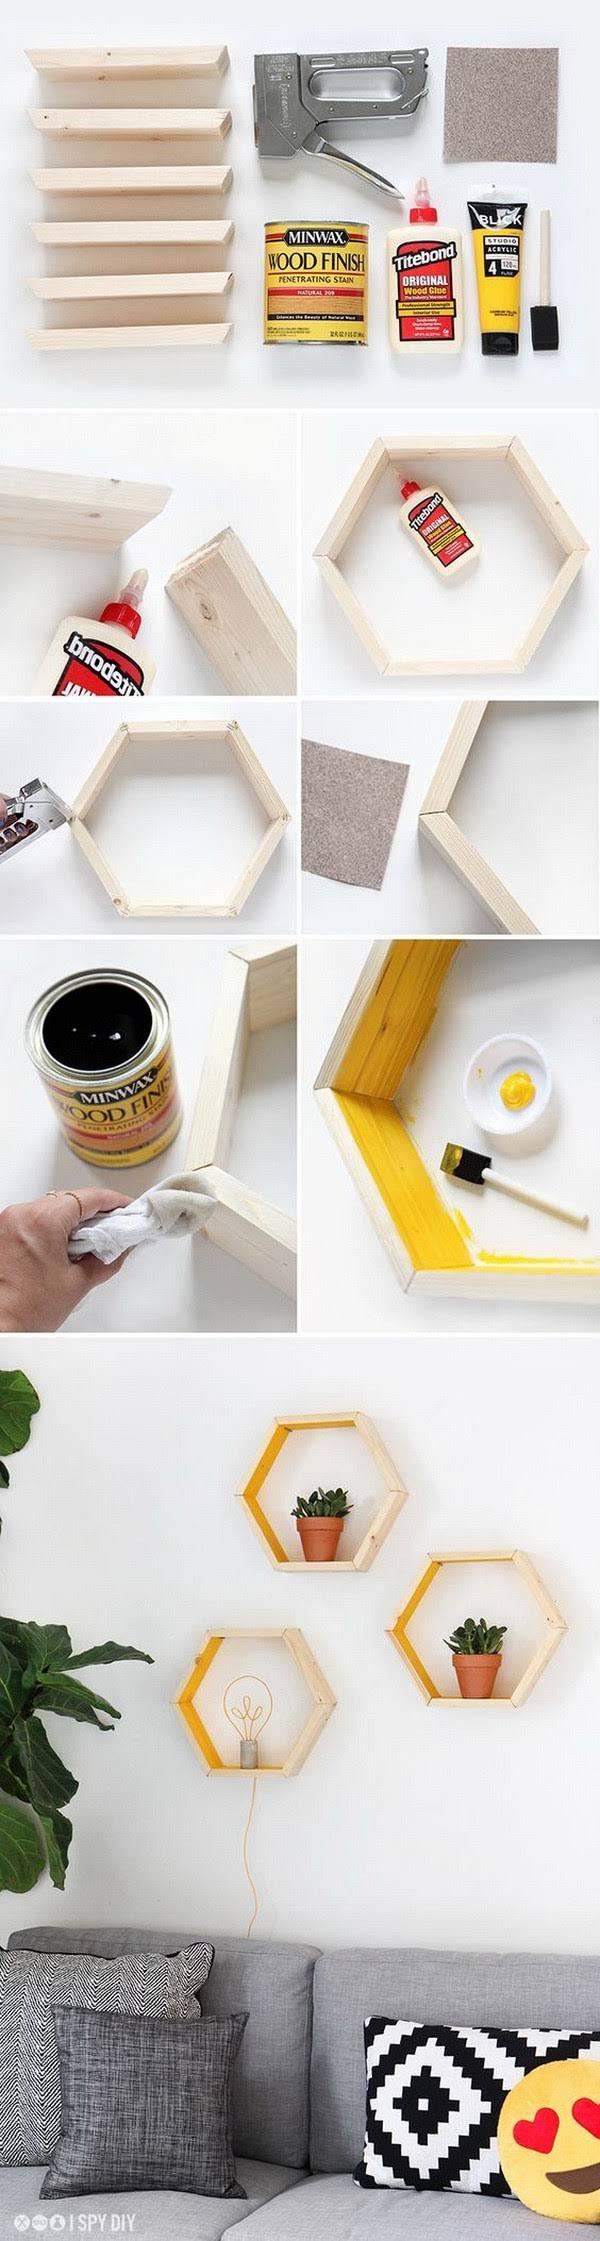 DIY Hexagonal Shelves. A Hexagon Is A Six Sided Shape That Is Well Suited